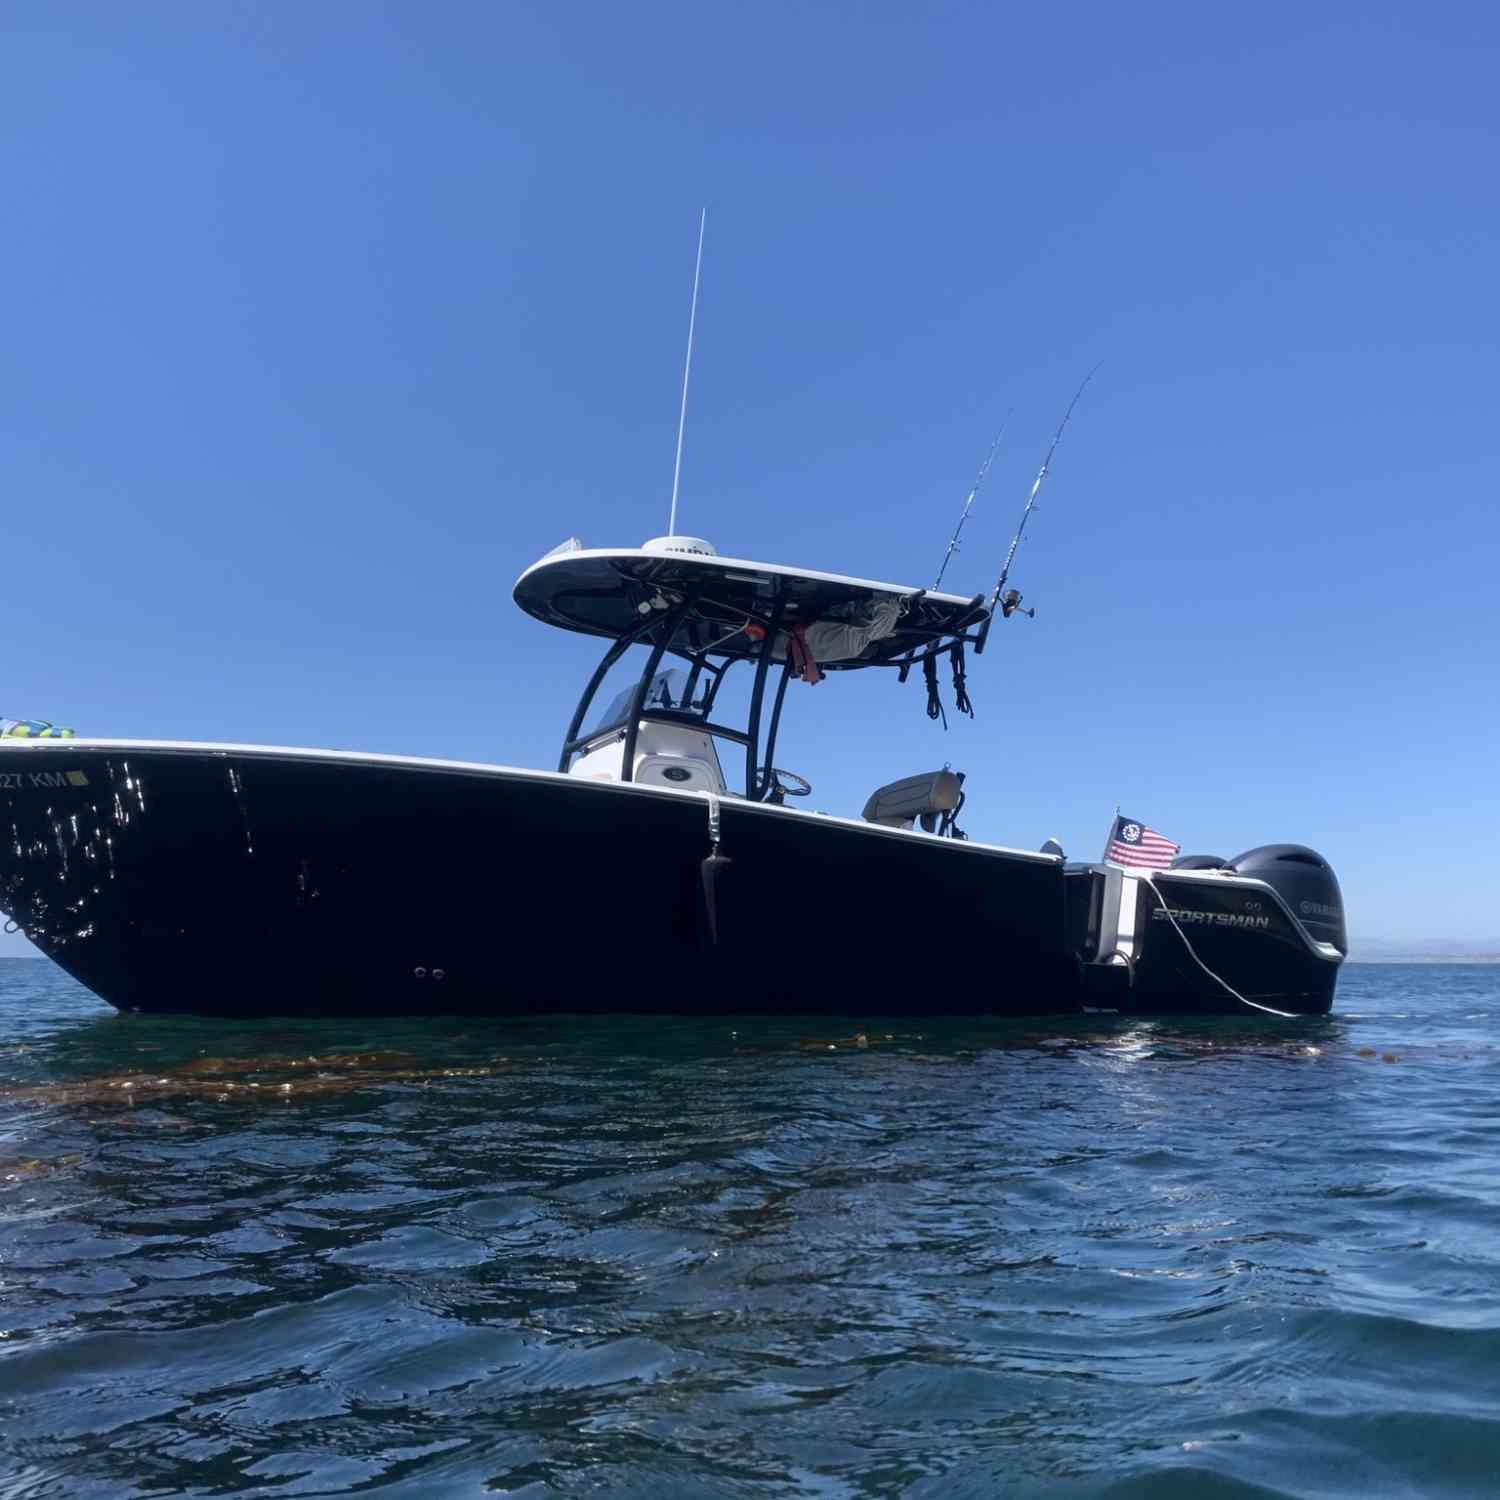 Title: Social distancing - On board their Sportsman Open 252 Center Console - Location: Lunada Bay, CA. Participating in the Photo Contest #SportsmanJune2020